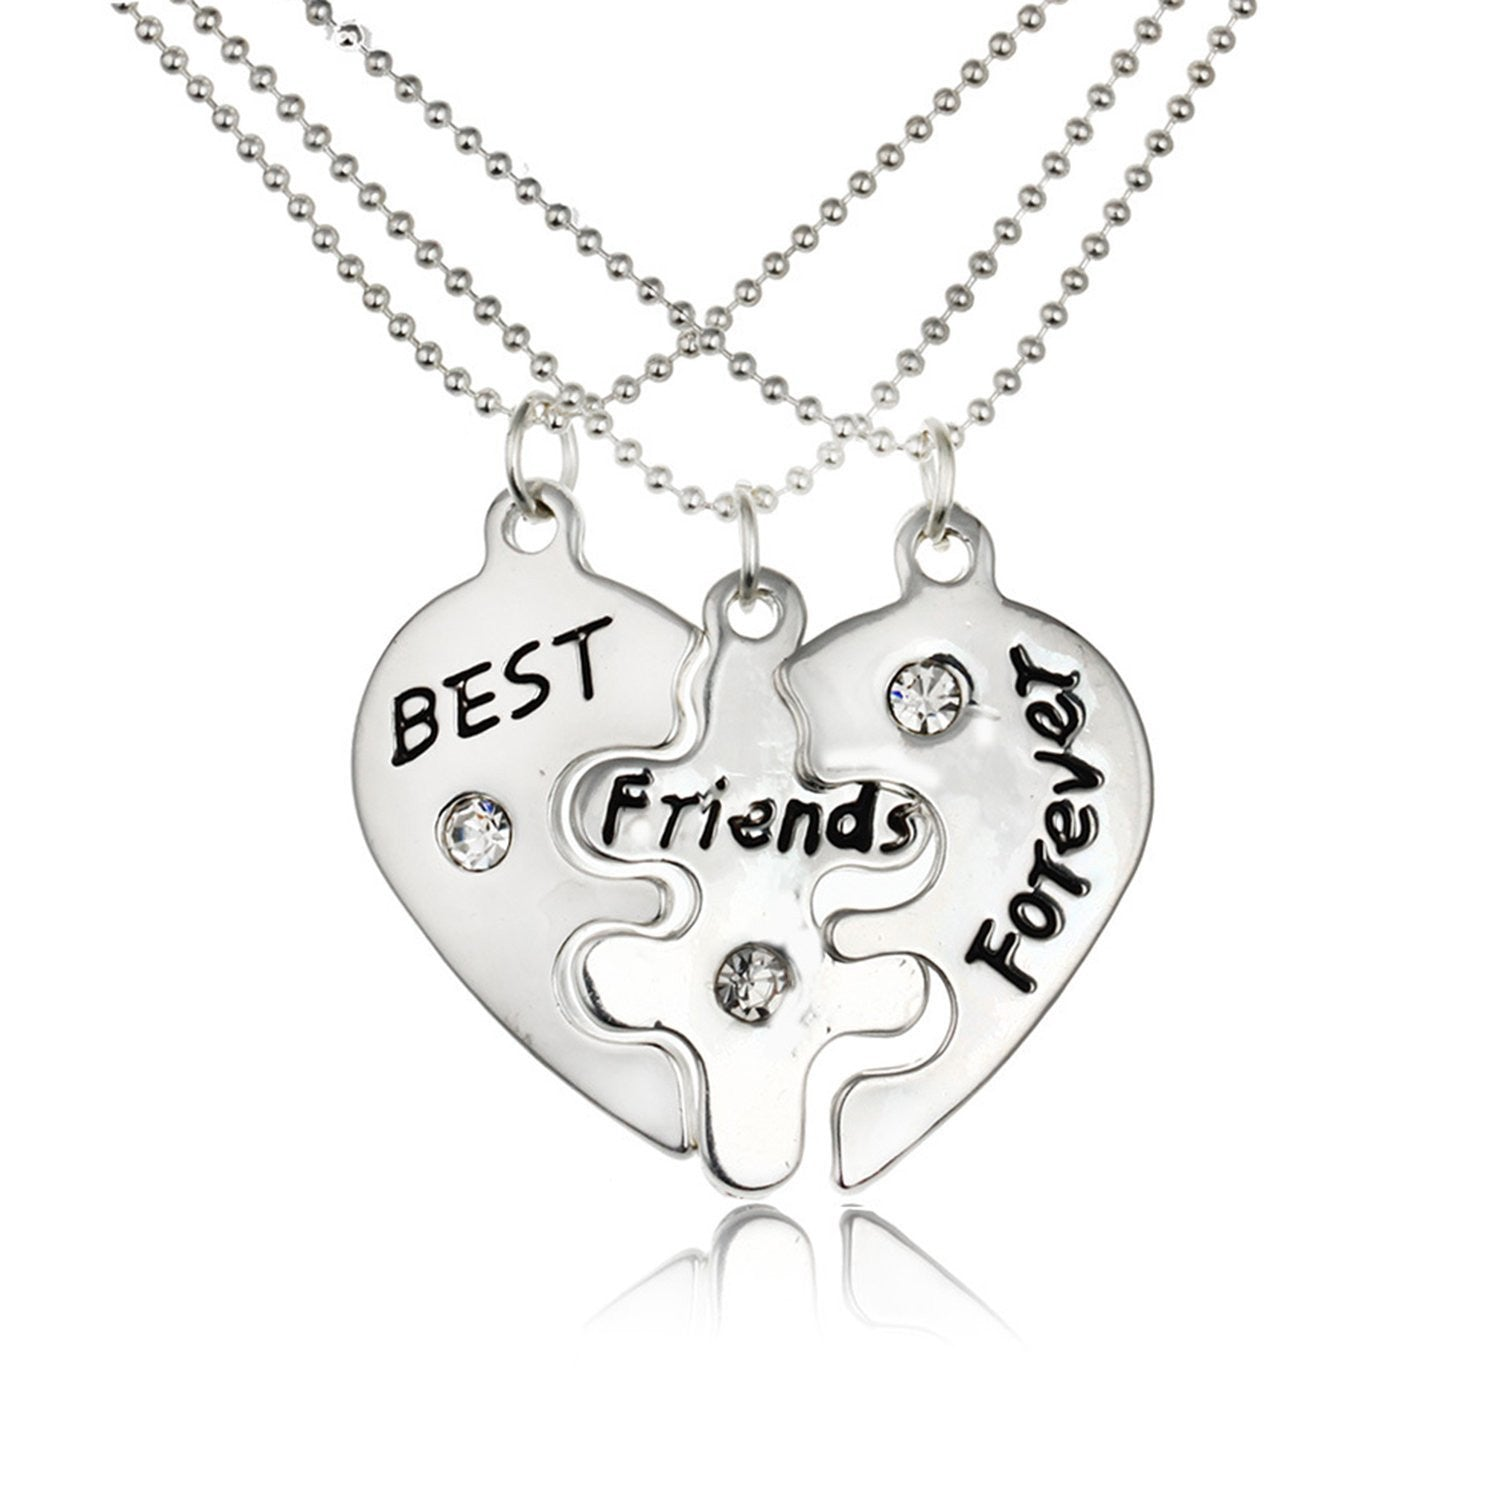 Friendship Pendant Necklace Best friends forever split heart pendant necklace bff heart best friends forever split heart pendant necklace bff heart friendship necklace set of 3 audiocablefo